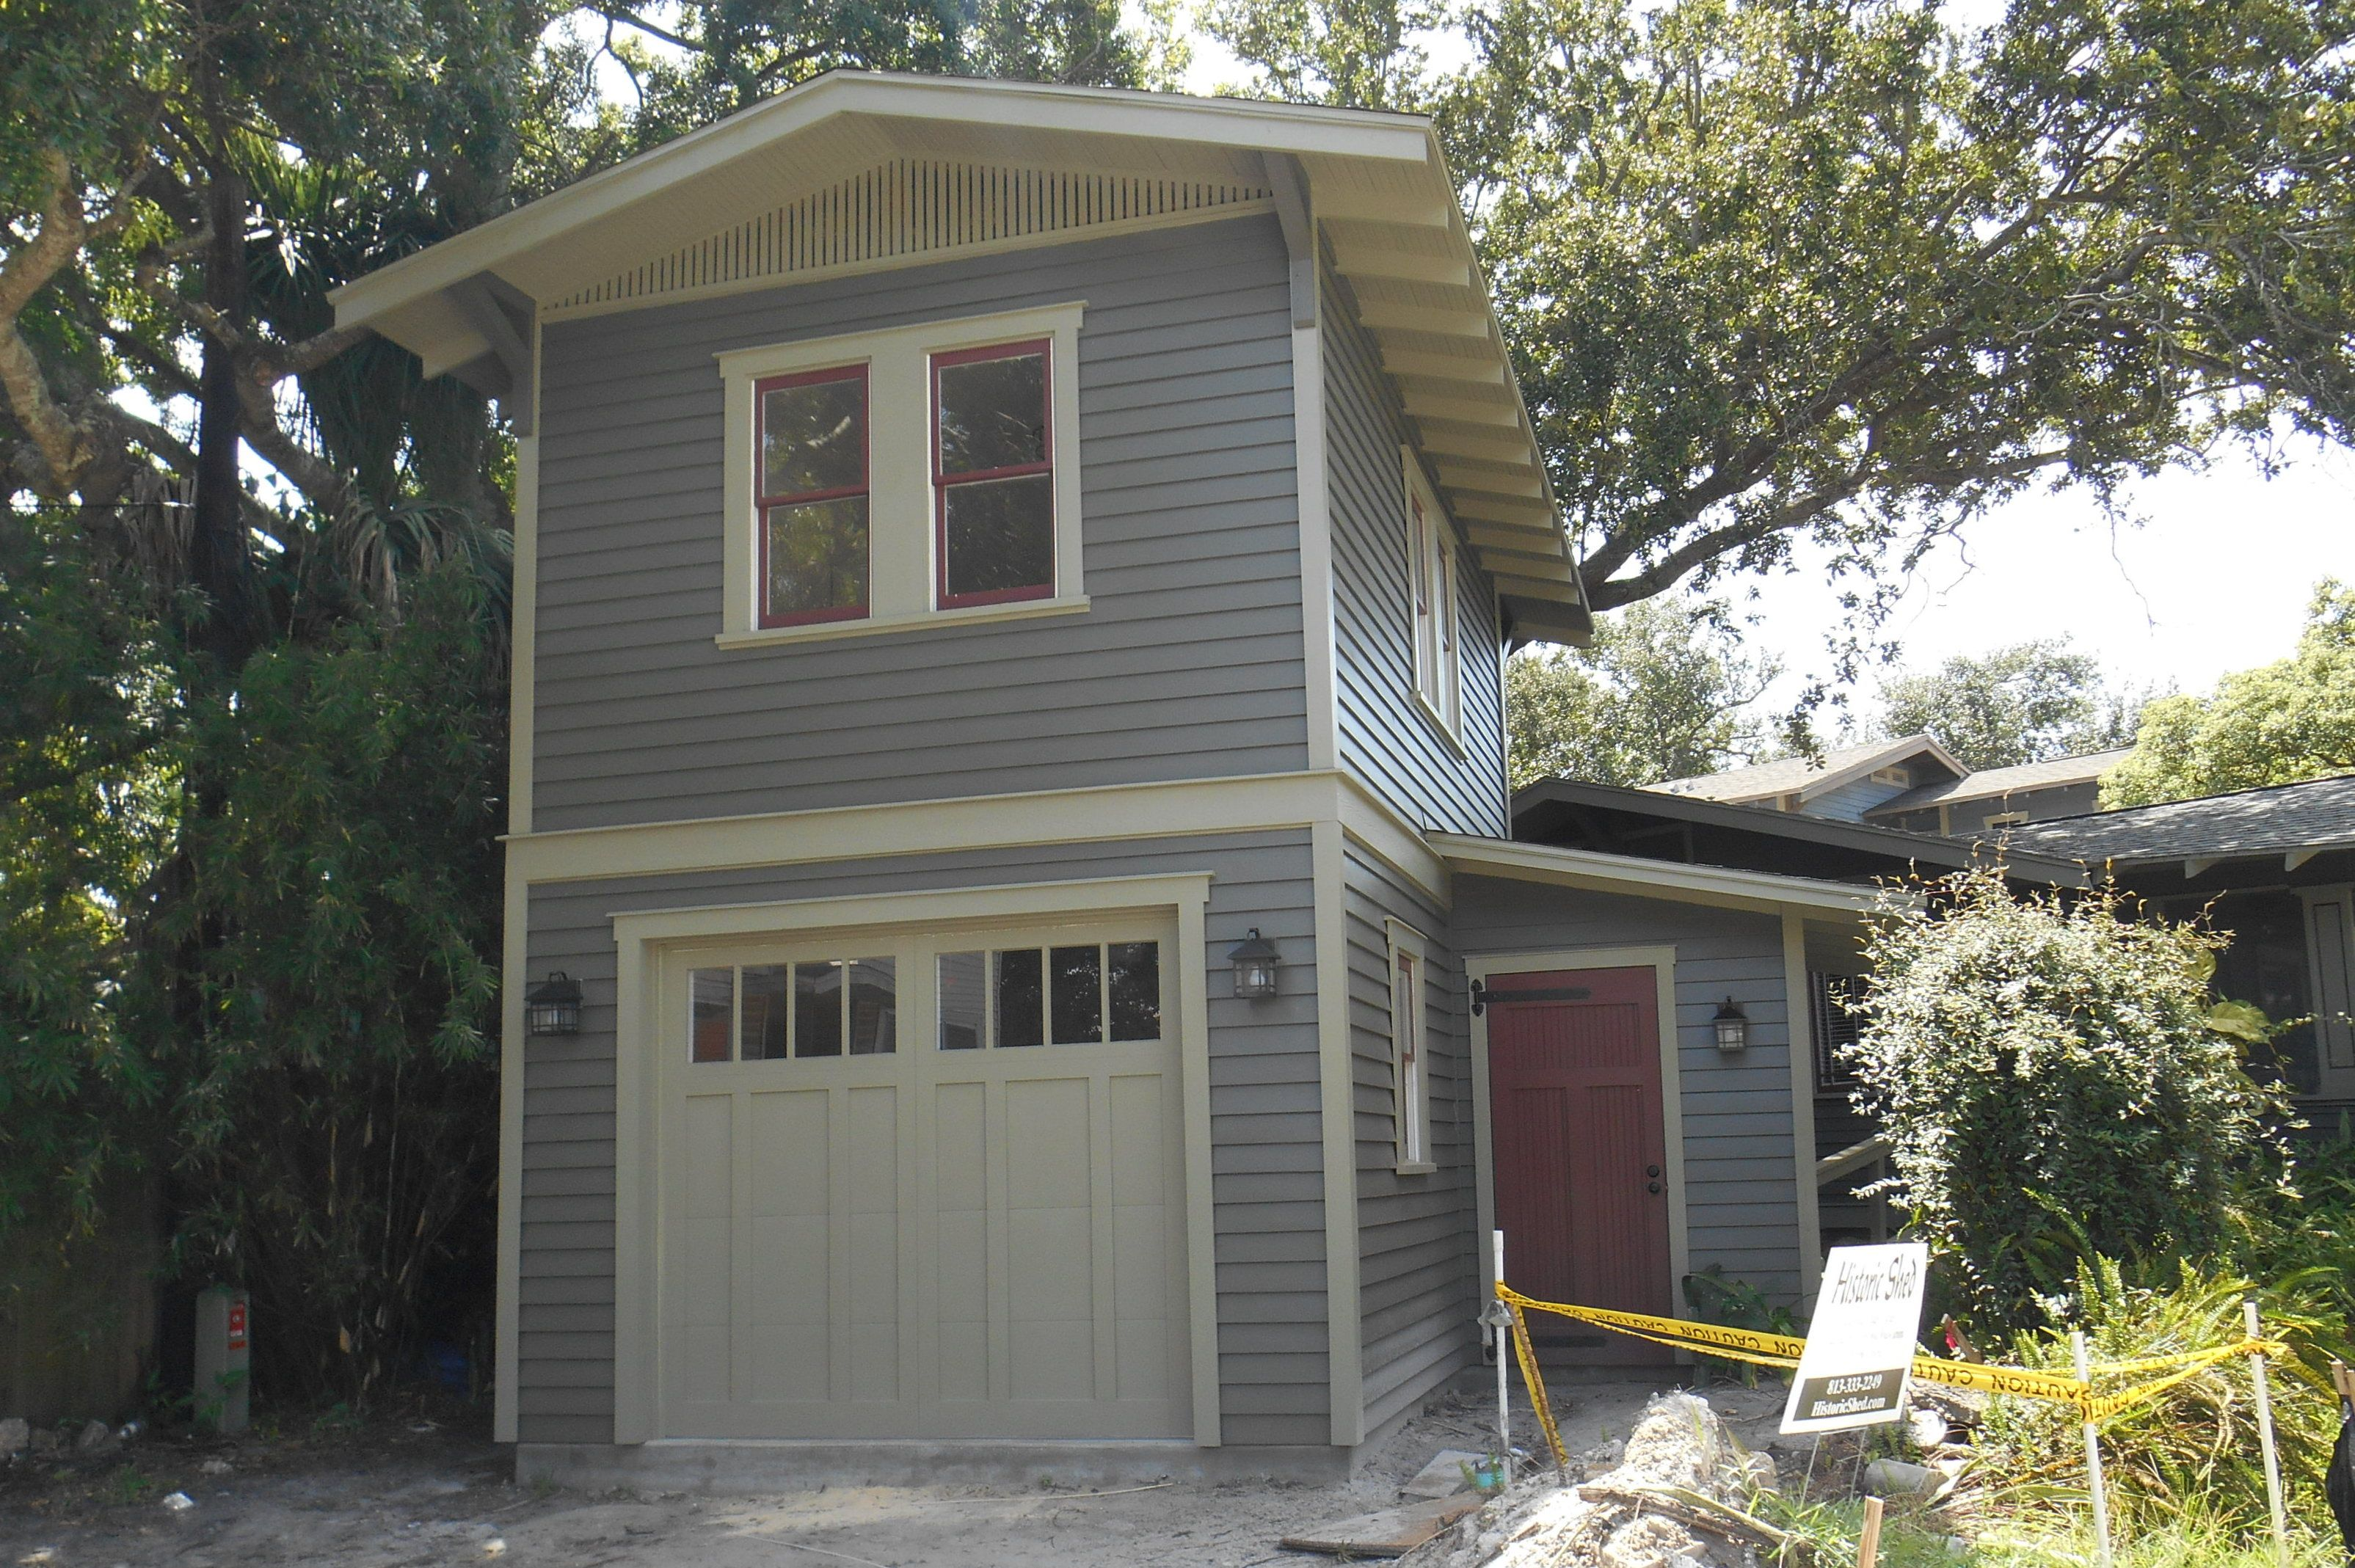 Two Story One Car Garage Apartment Construction Plans  Two Story Garage Apartment Plans